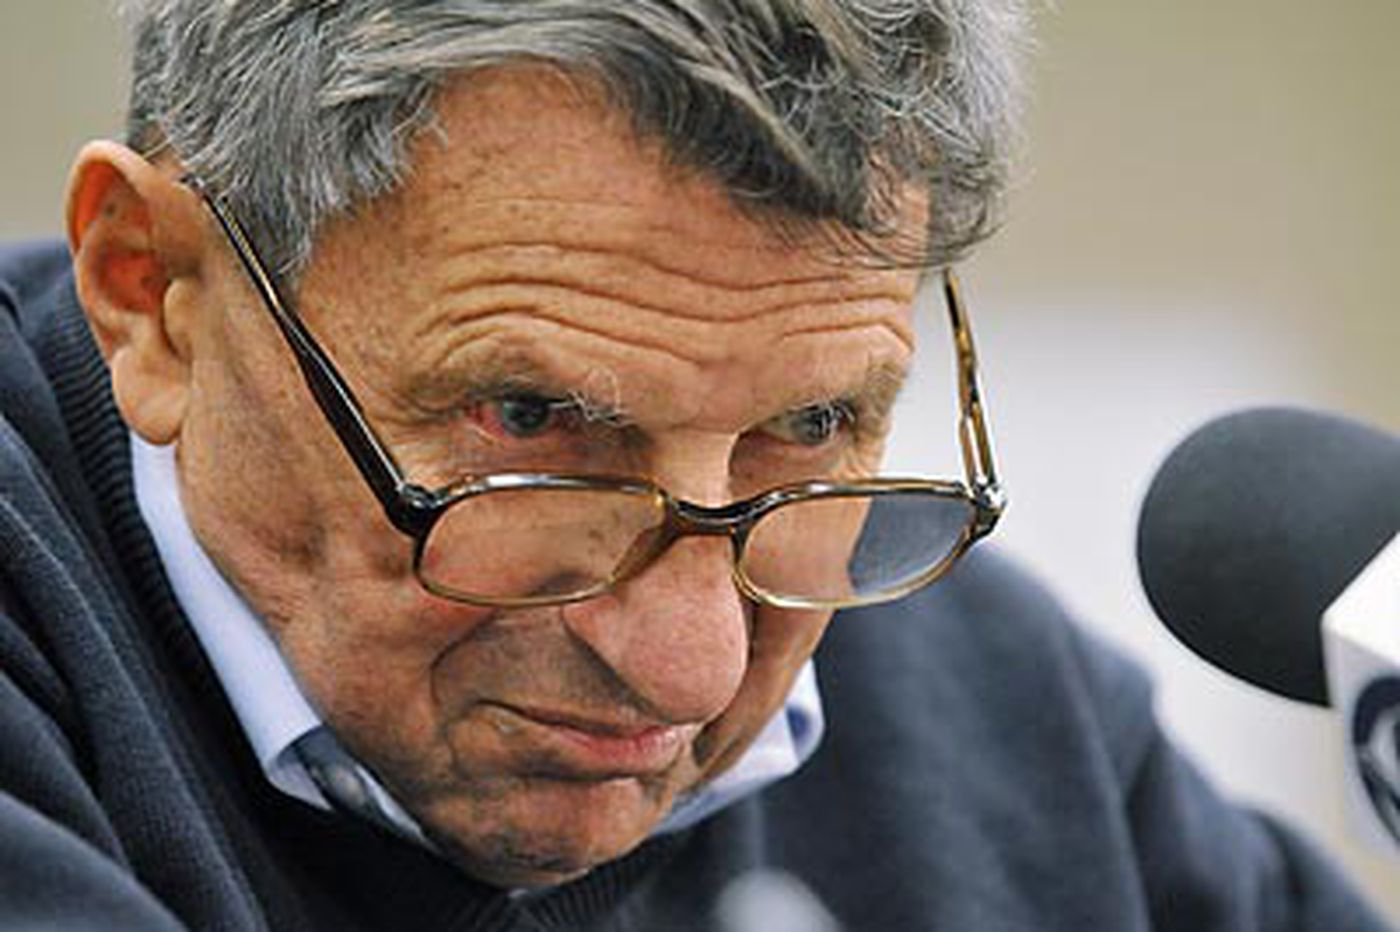 Paterno praises Florida's Meyer, questions Nits' Newsome